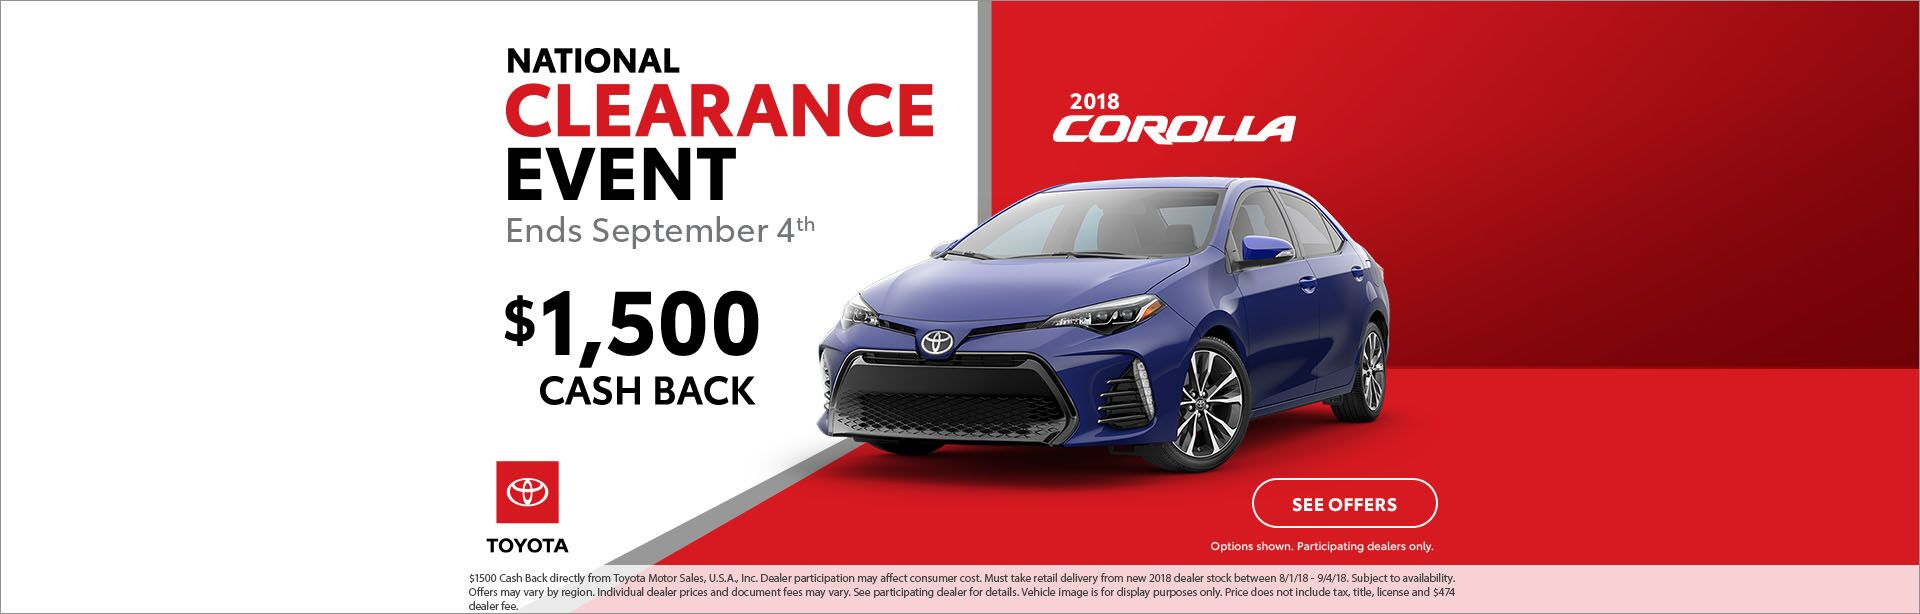 18 Corolla Cash back